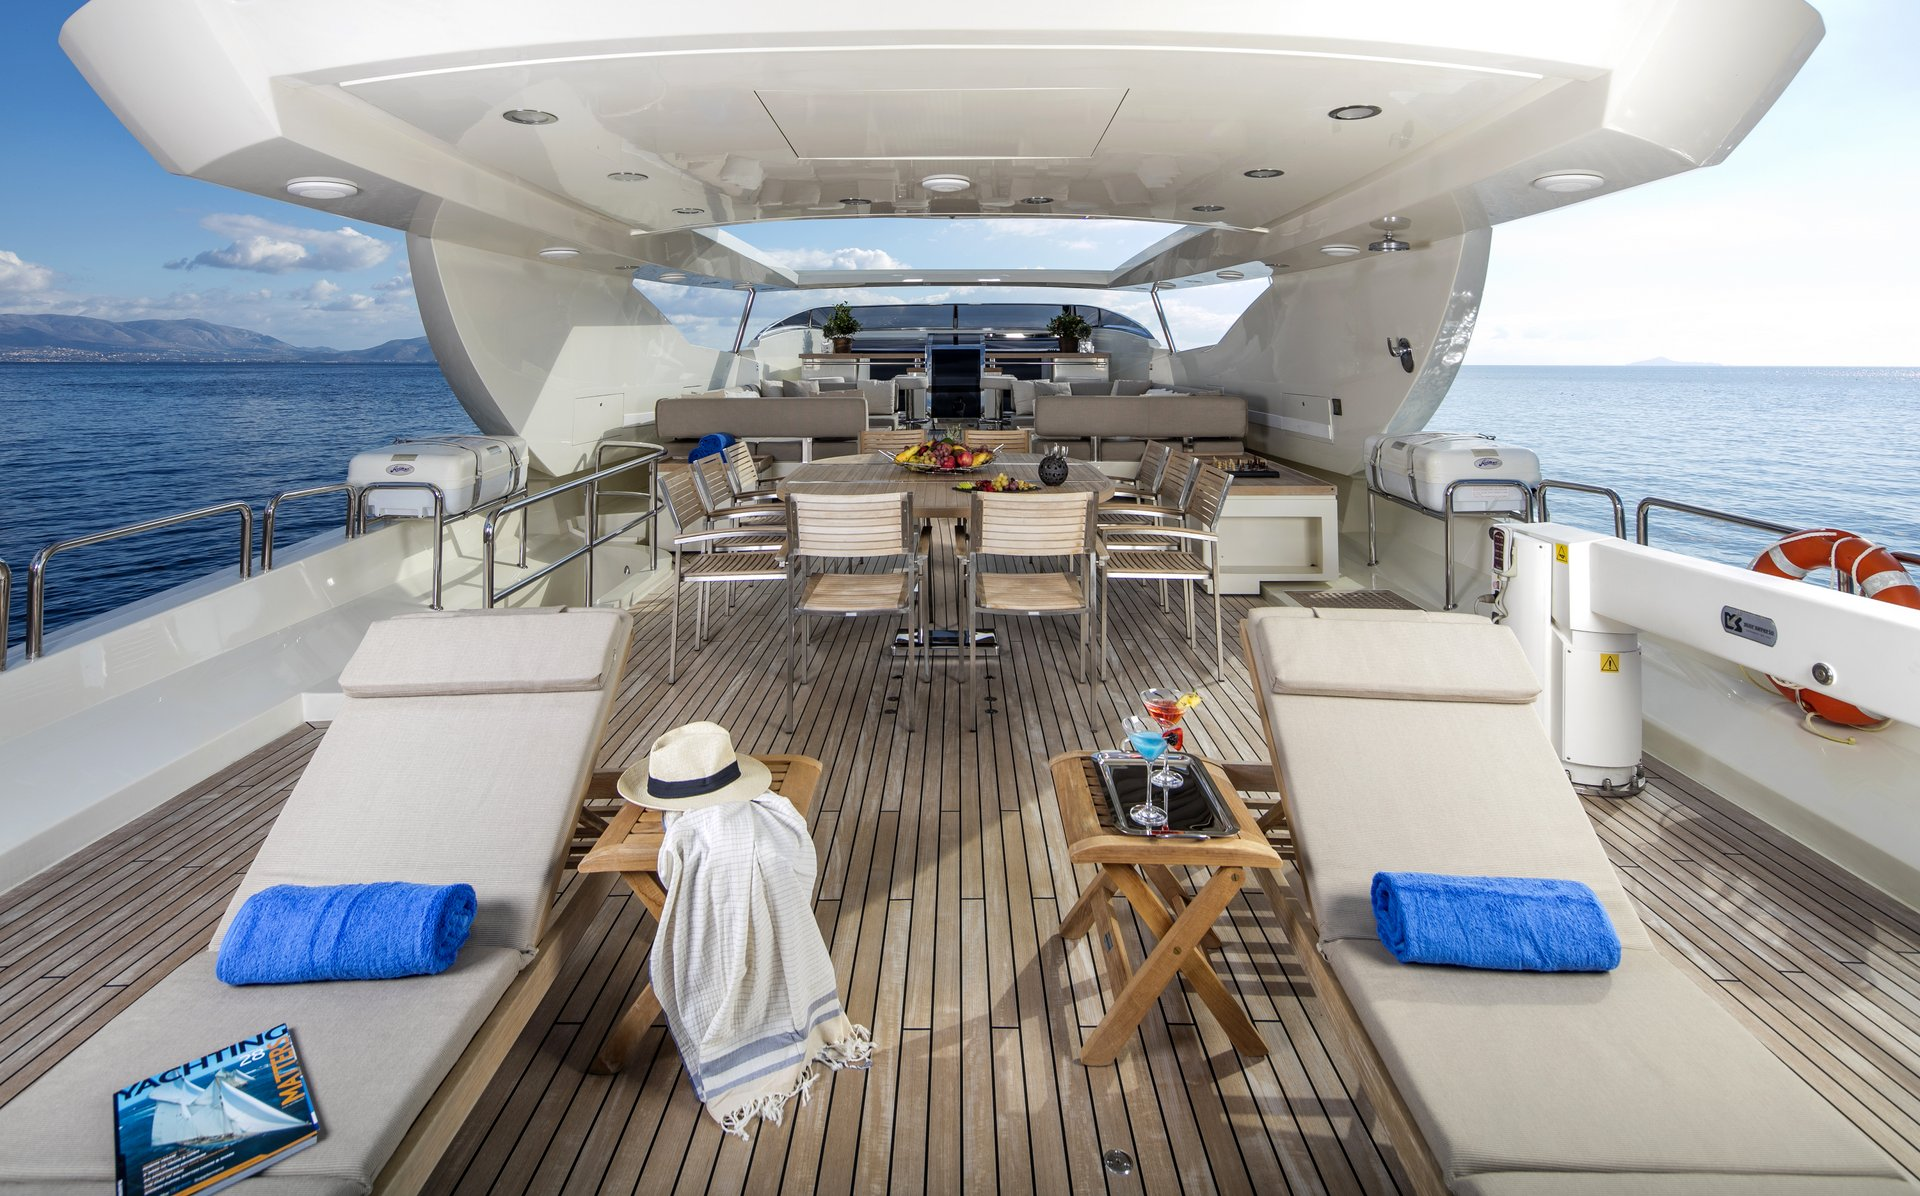 M/Y RINI yacht for charter sun deck